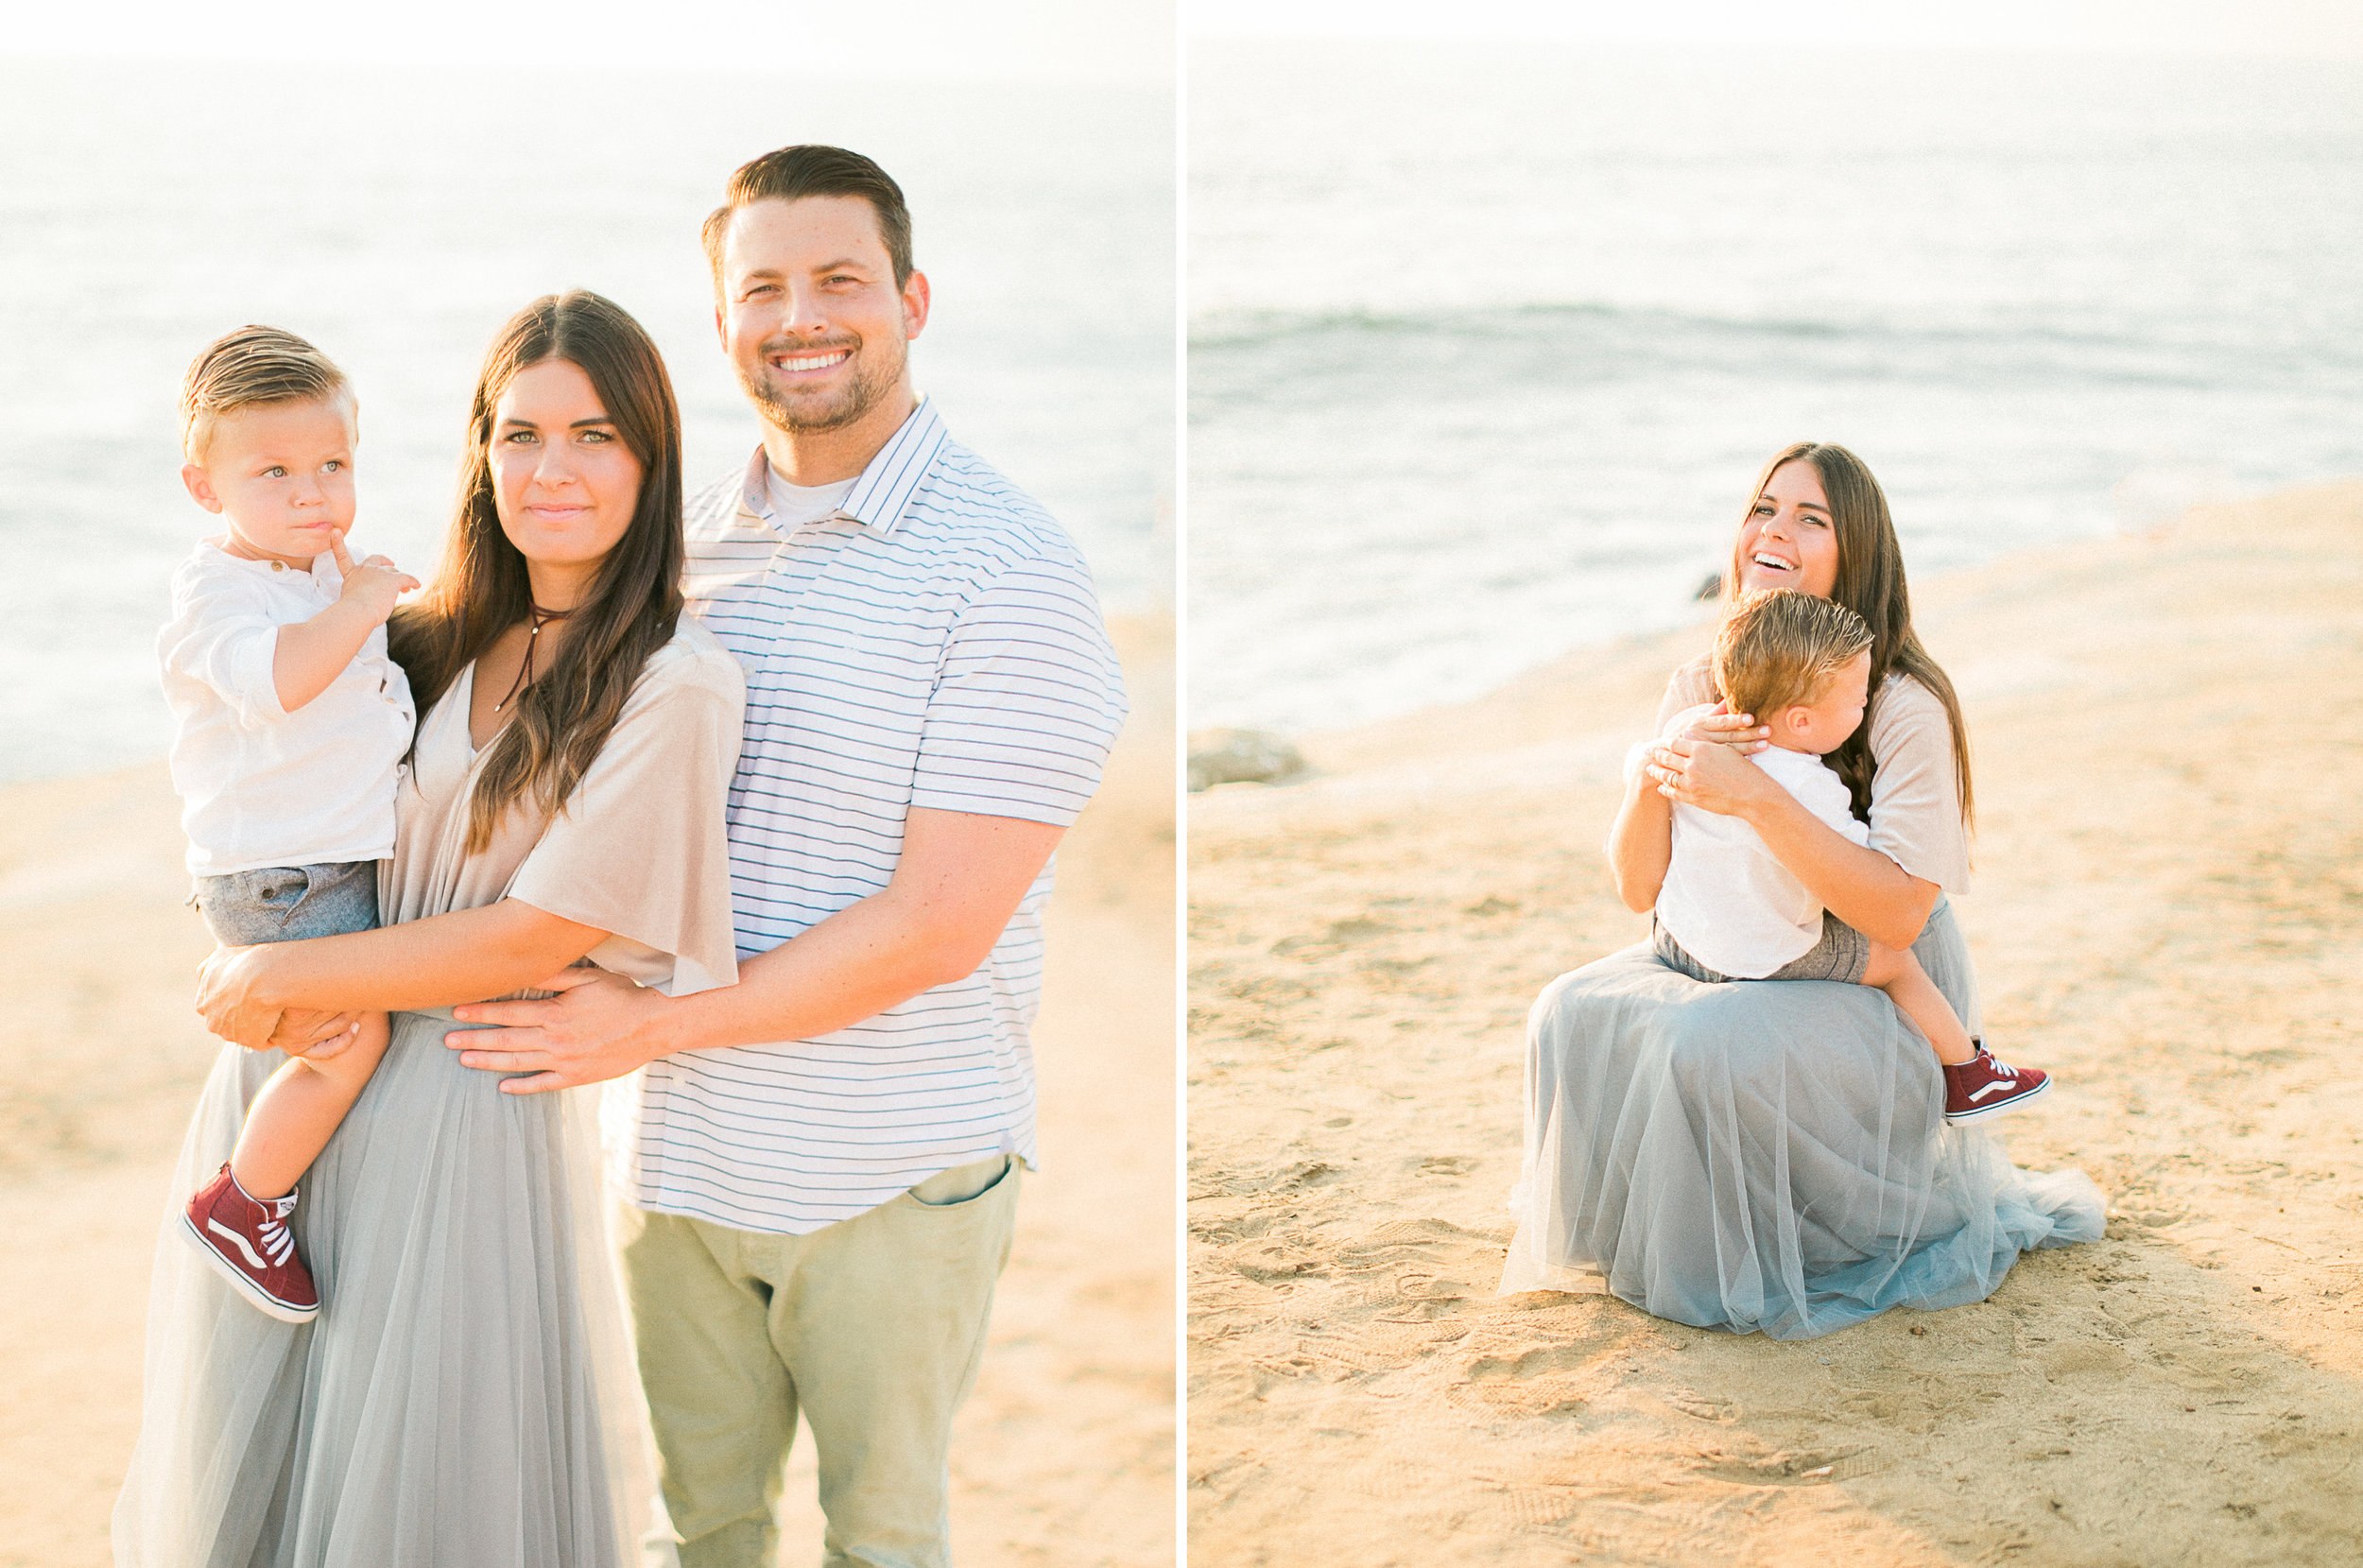 San Diego fine art film photography - Sunset Cliffs beach family session